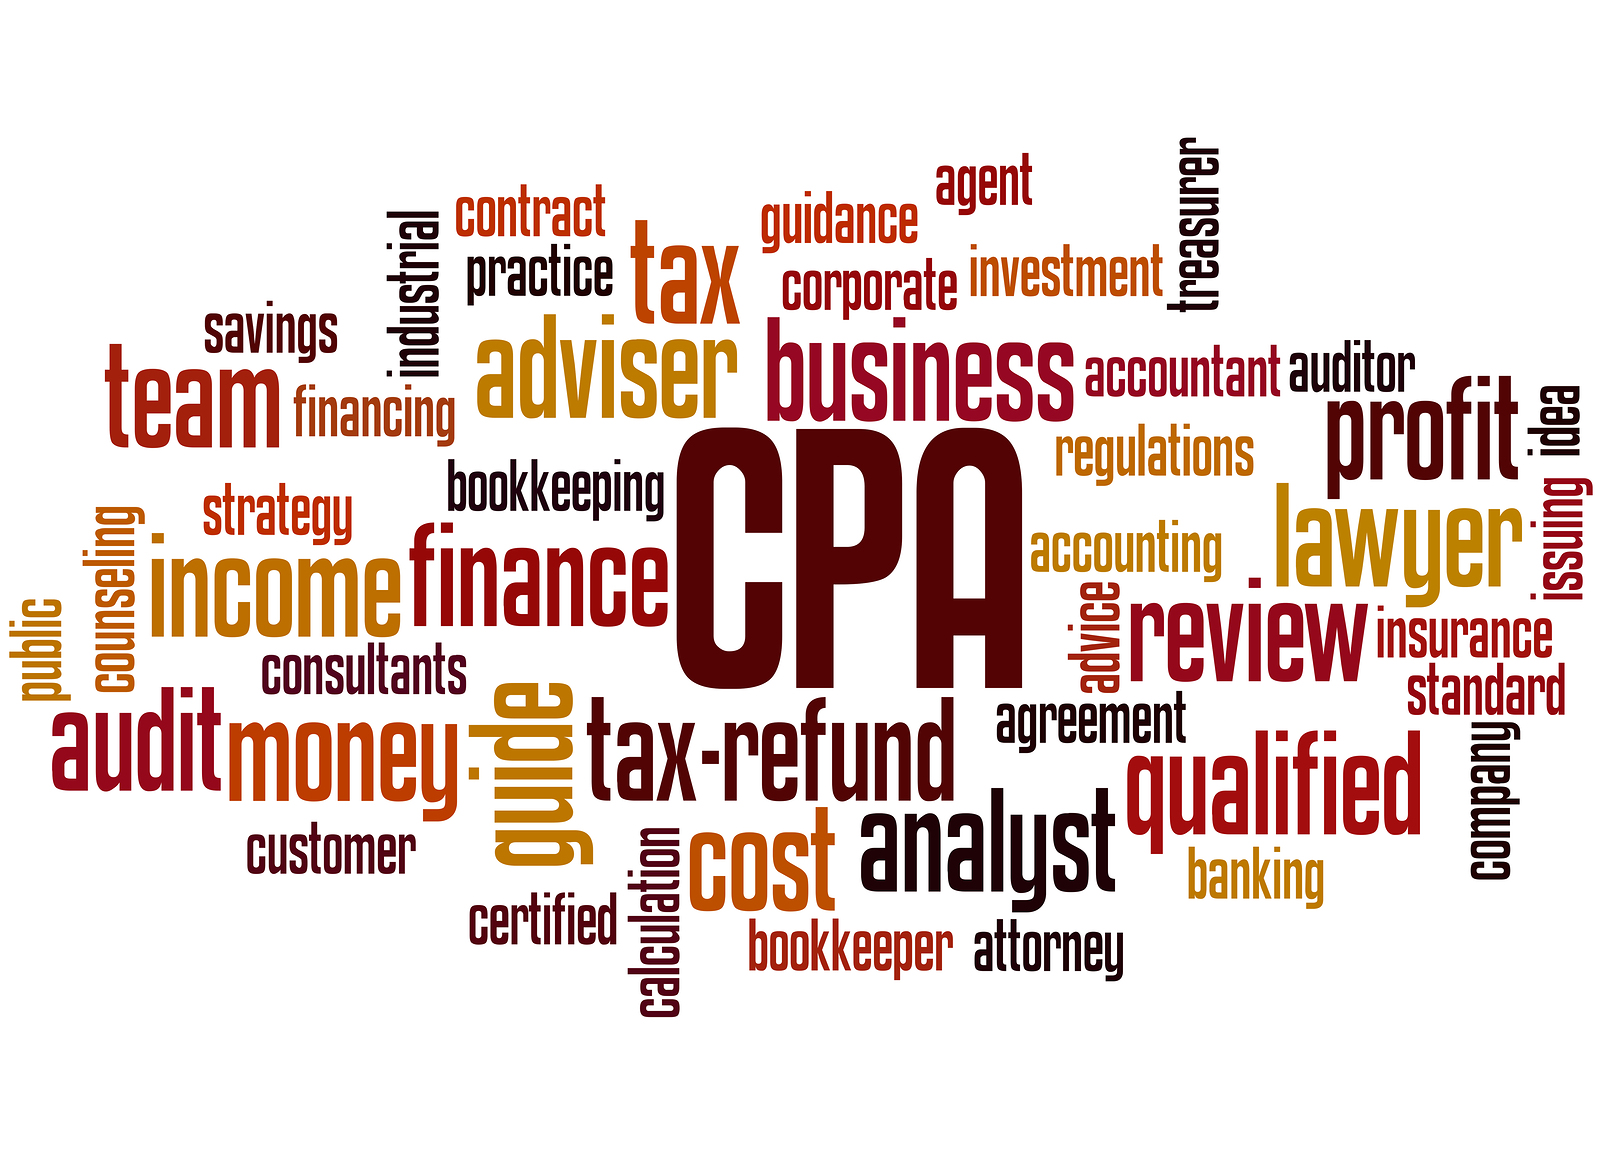 Cpa - Certified Public Accountant, Word Cloud Concept 8